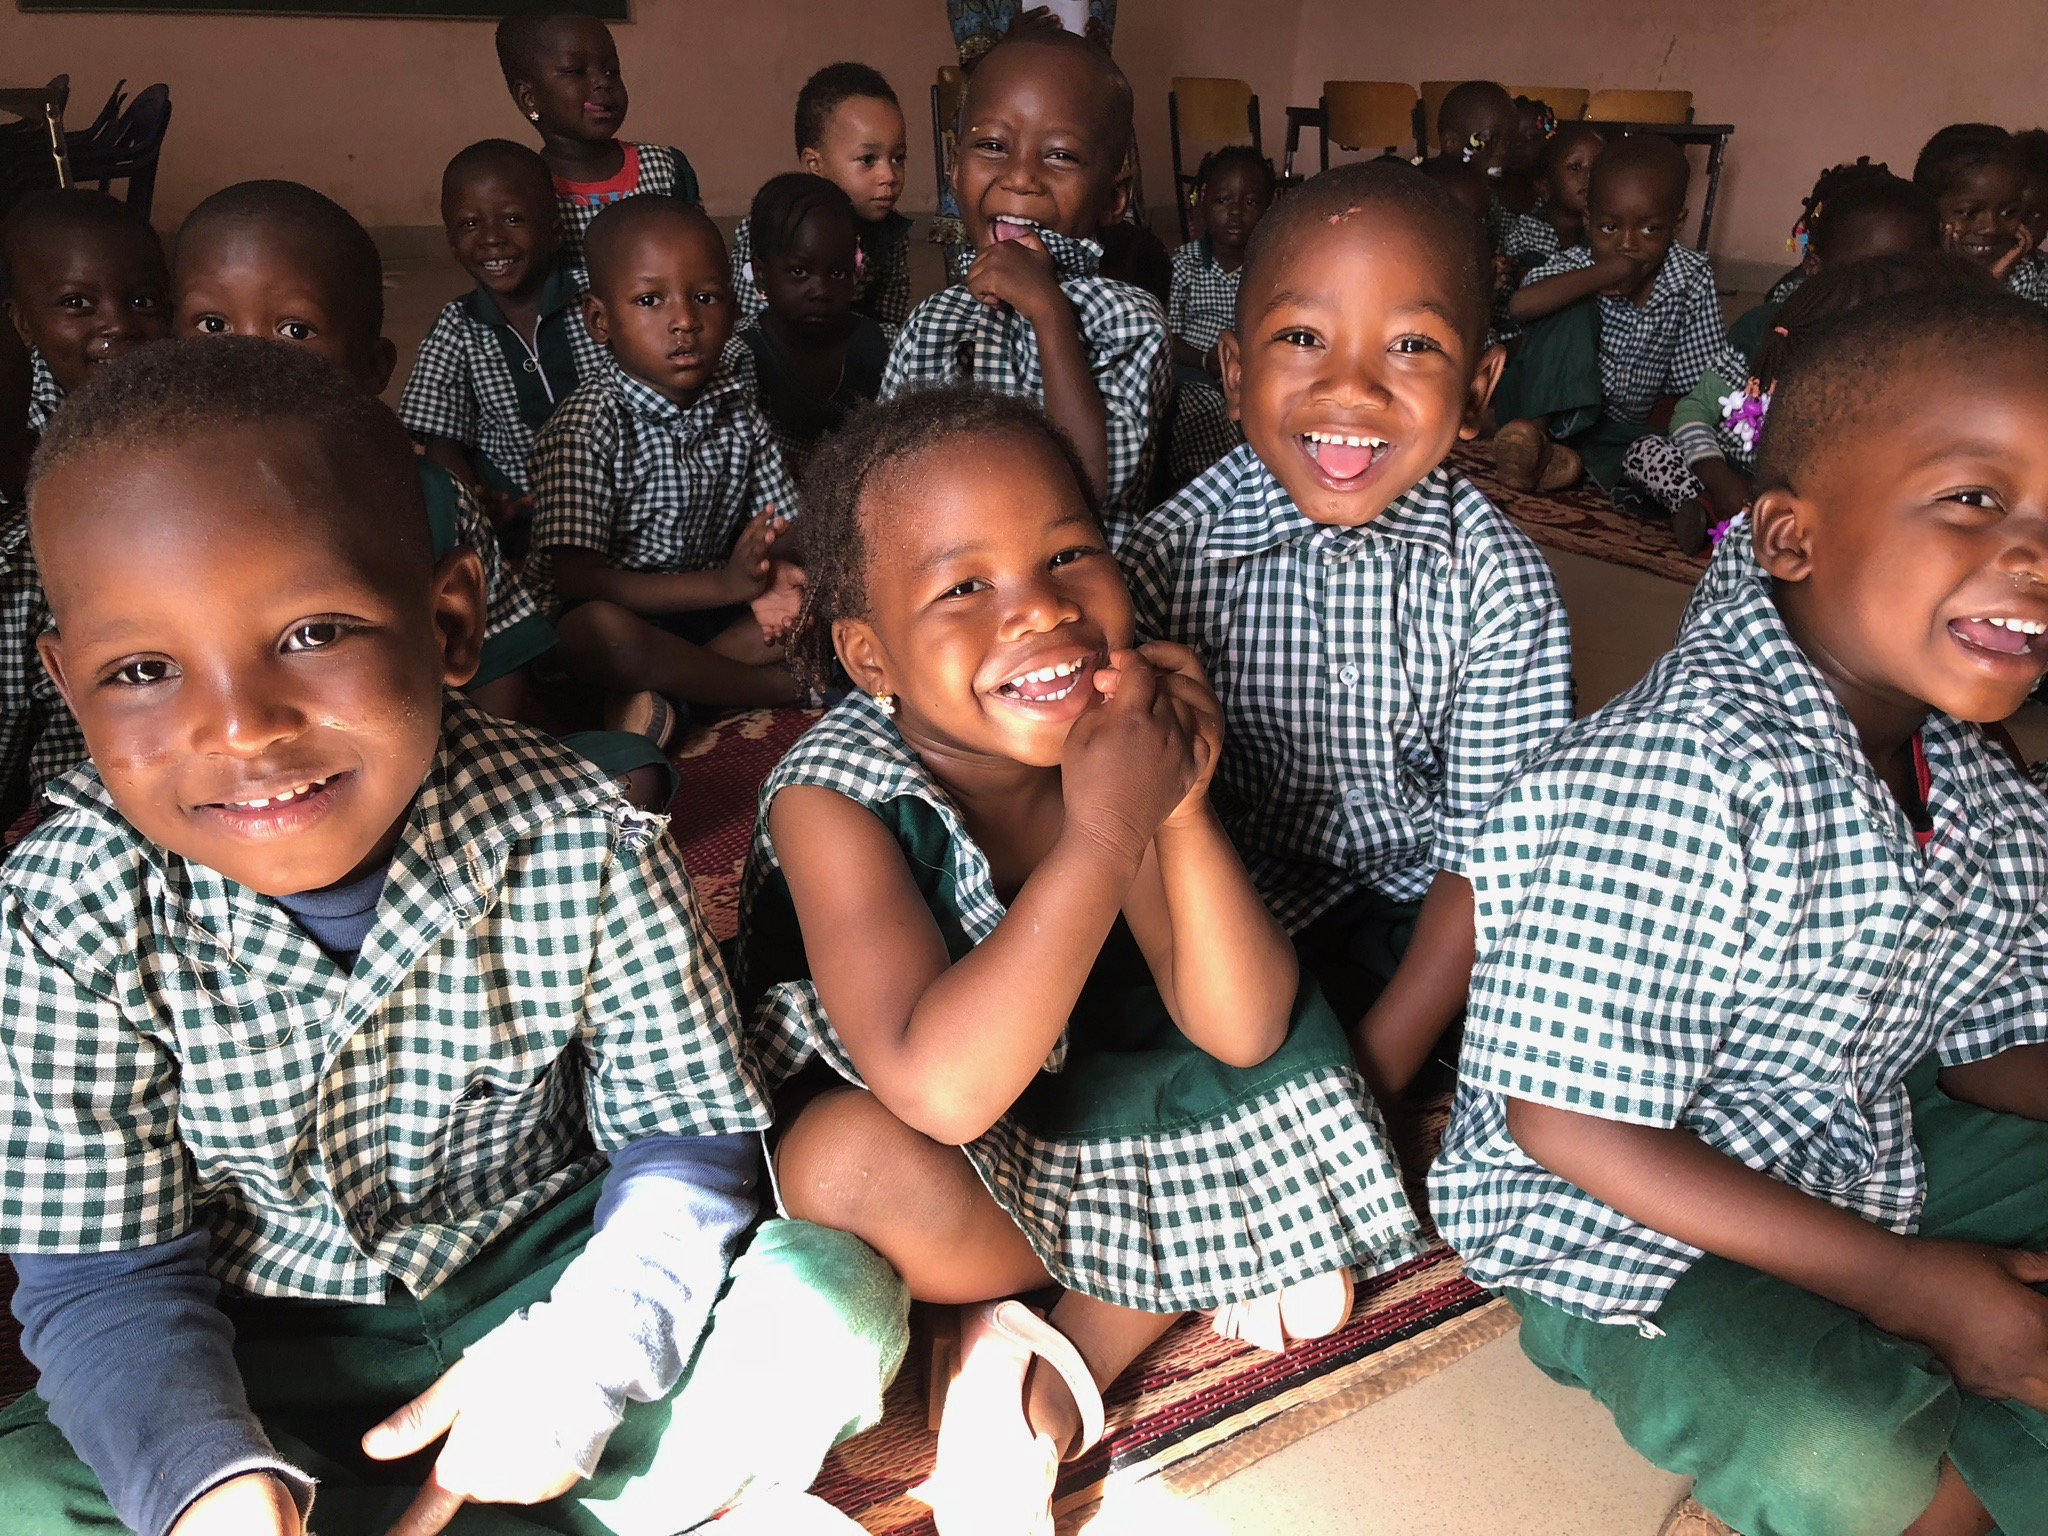 Smiling children in West Africa